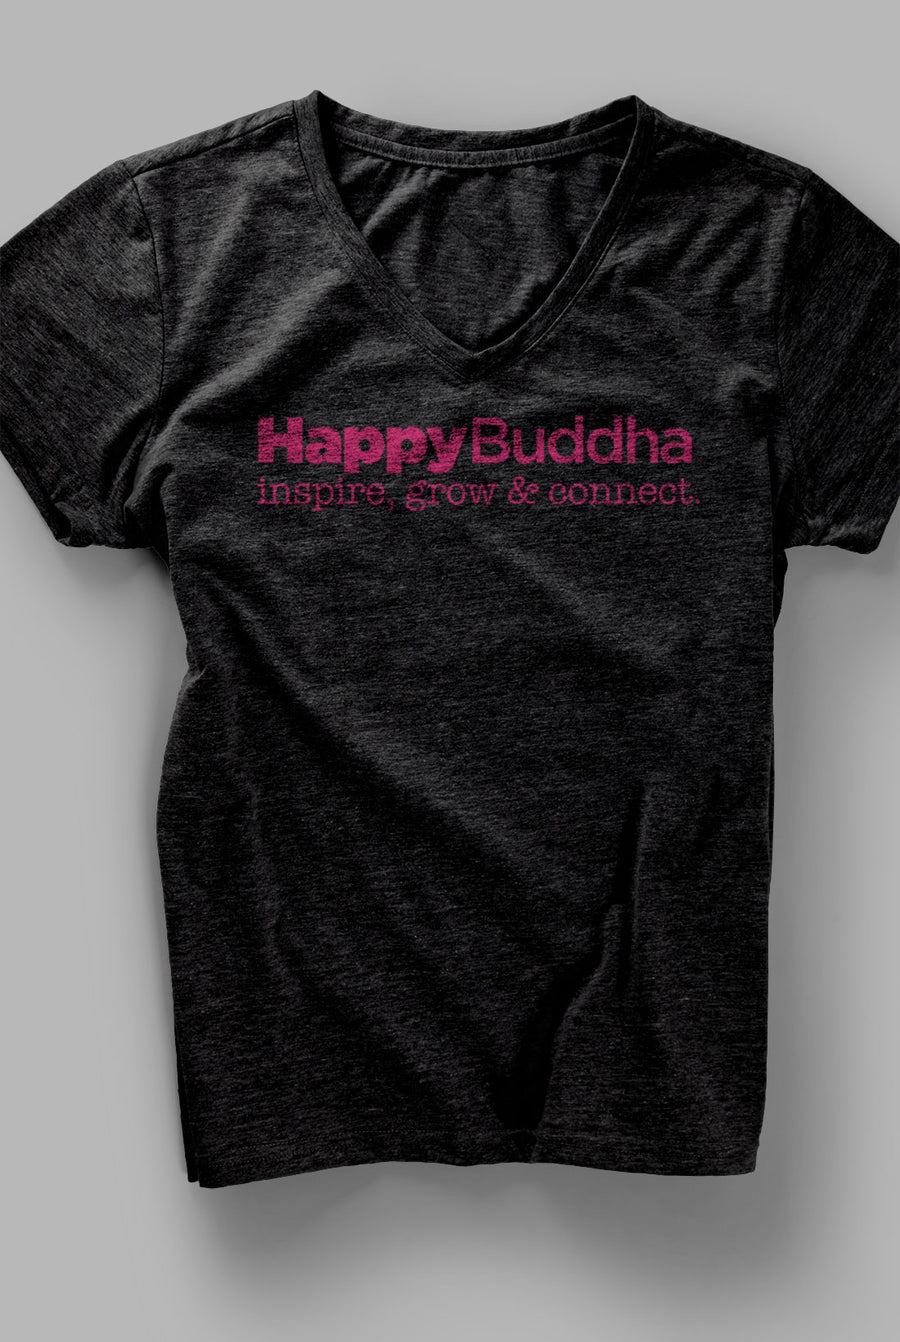 Happy Buddha Deep V Tee - Being Happy Buddha